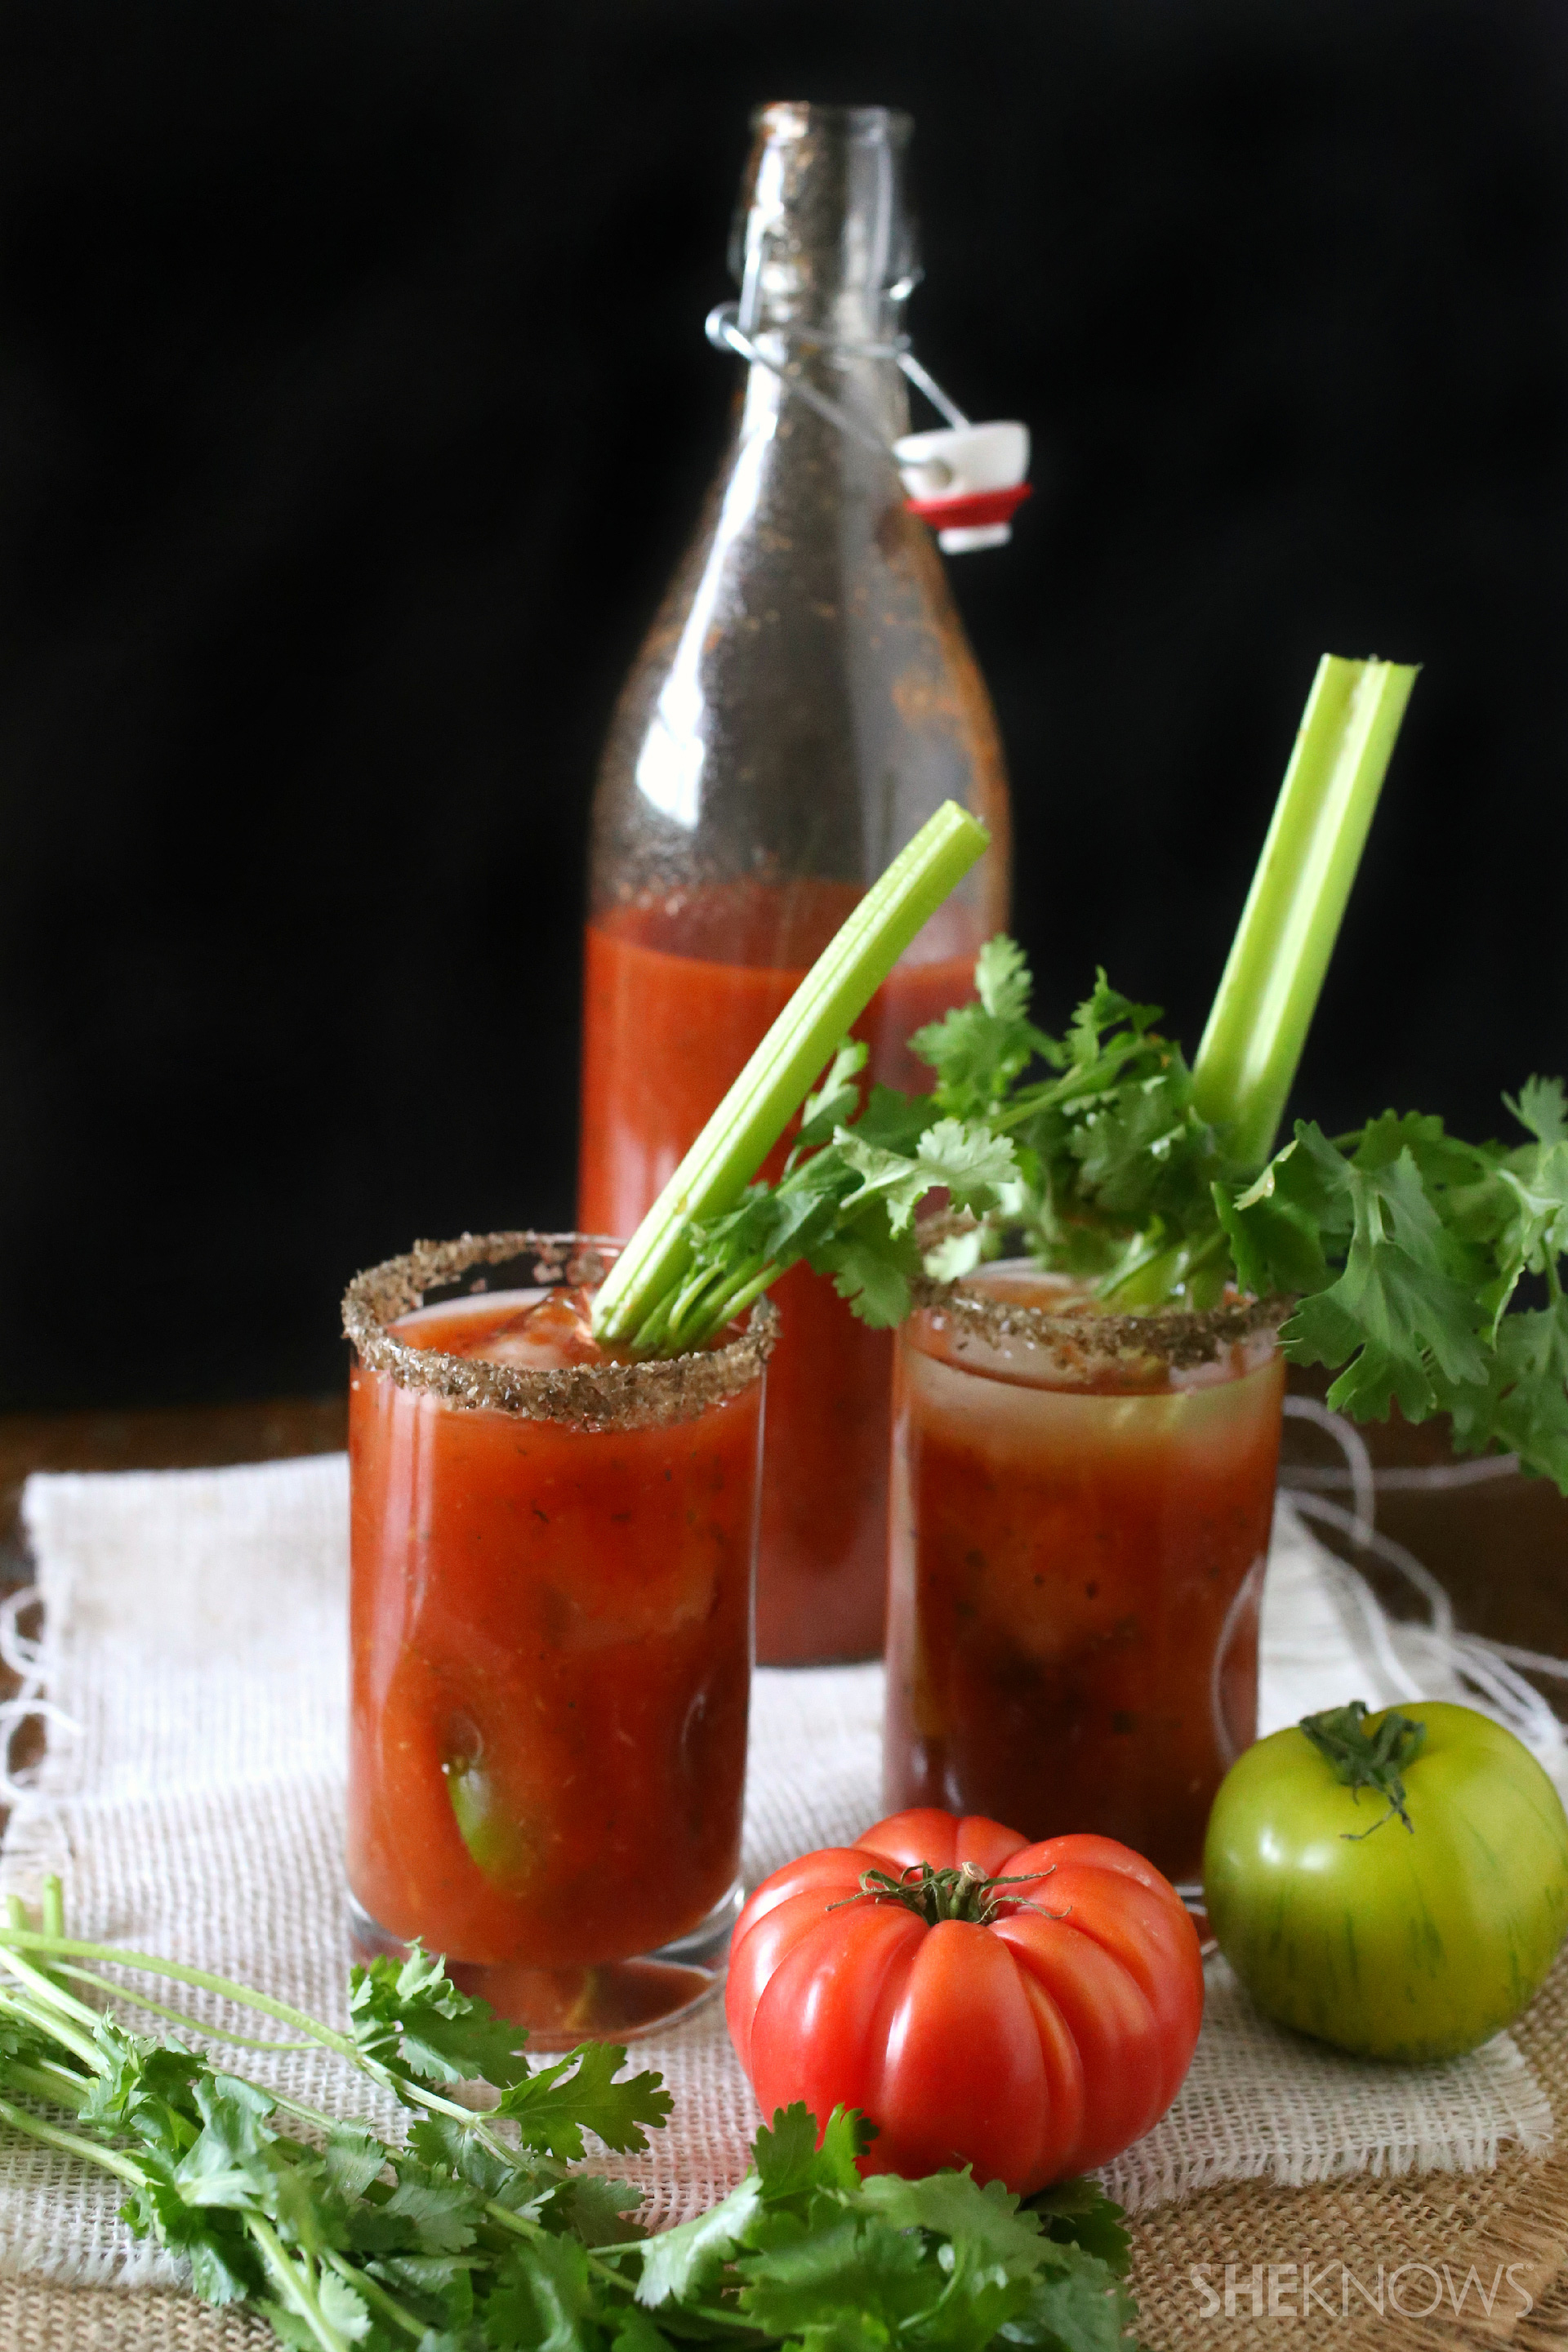 Forget the store-bought kind and mix up your own heirloom bloody marys